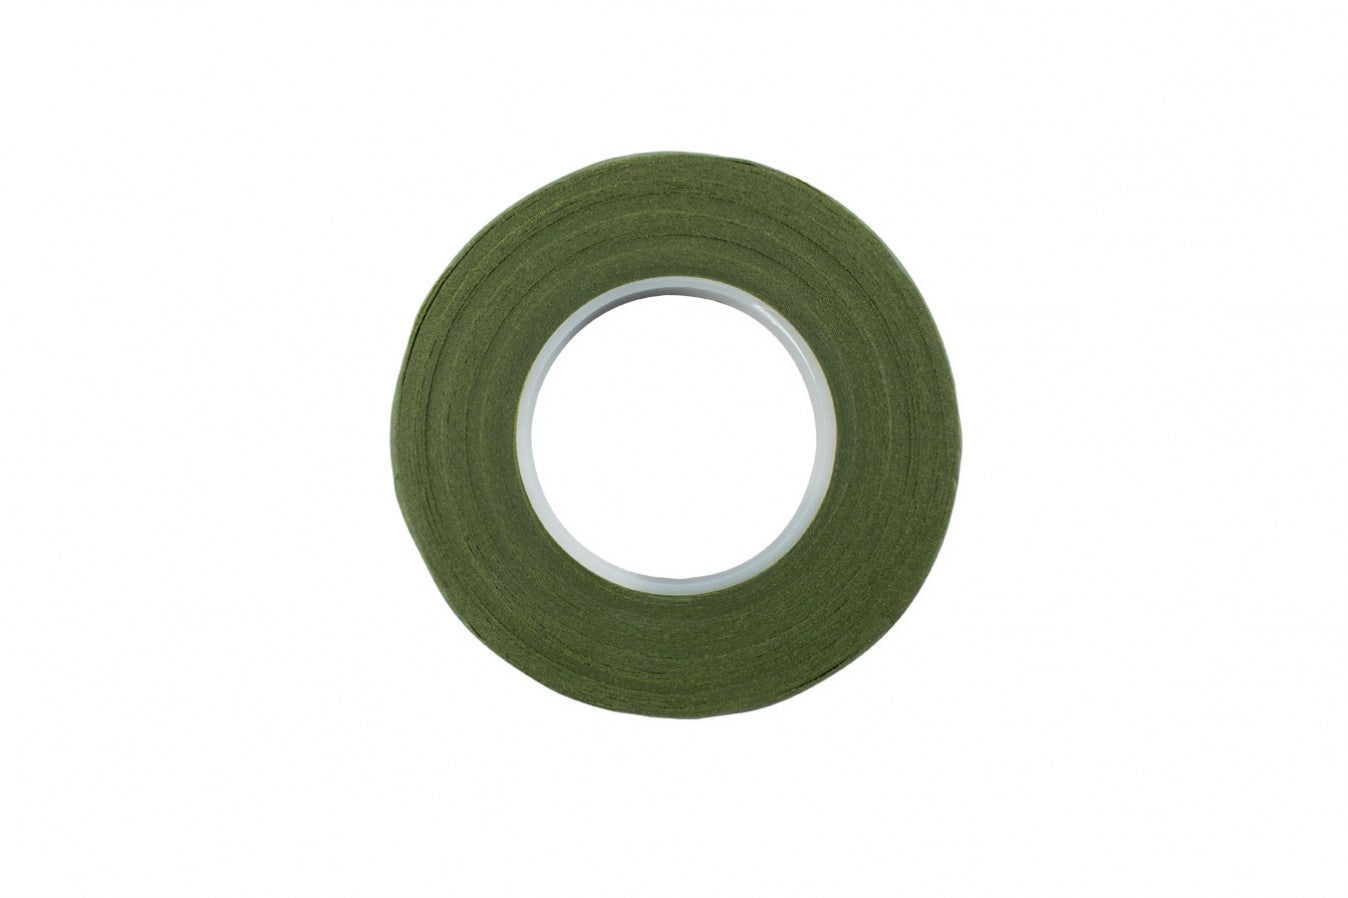 Stemtex Tape - Dark Green